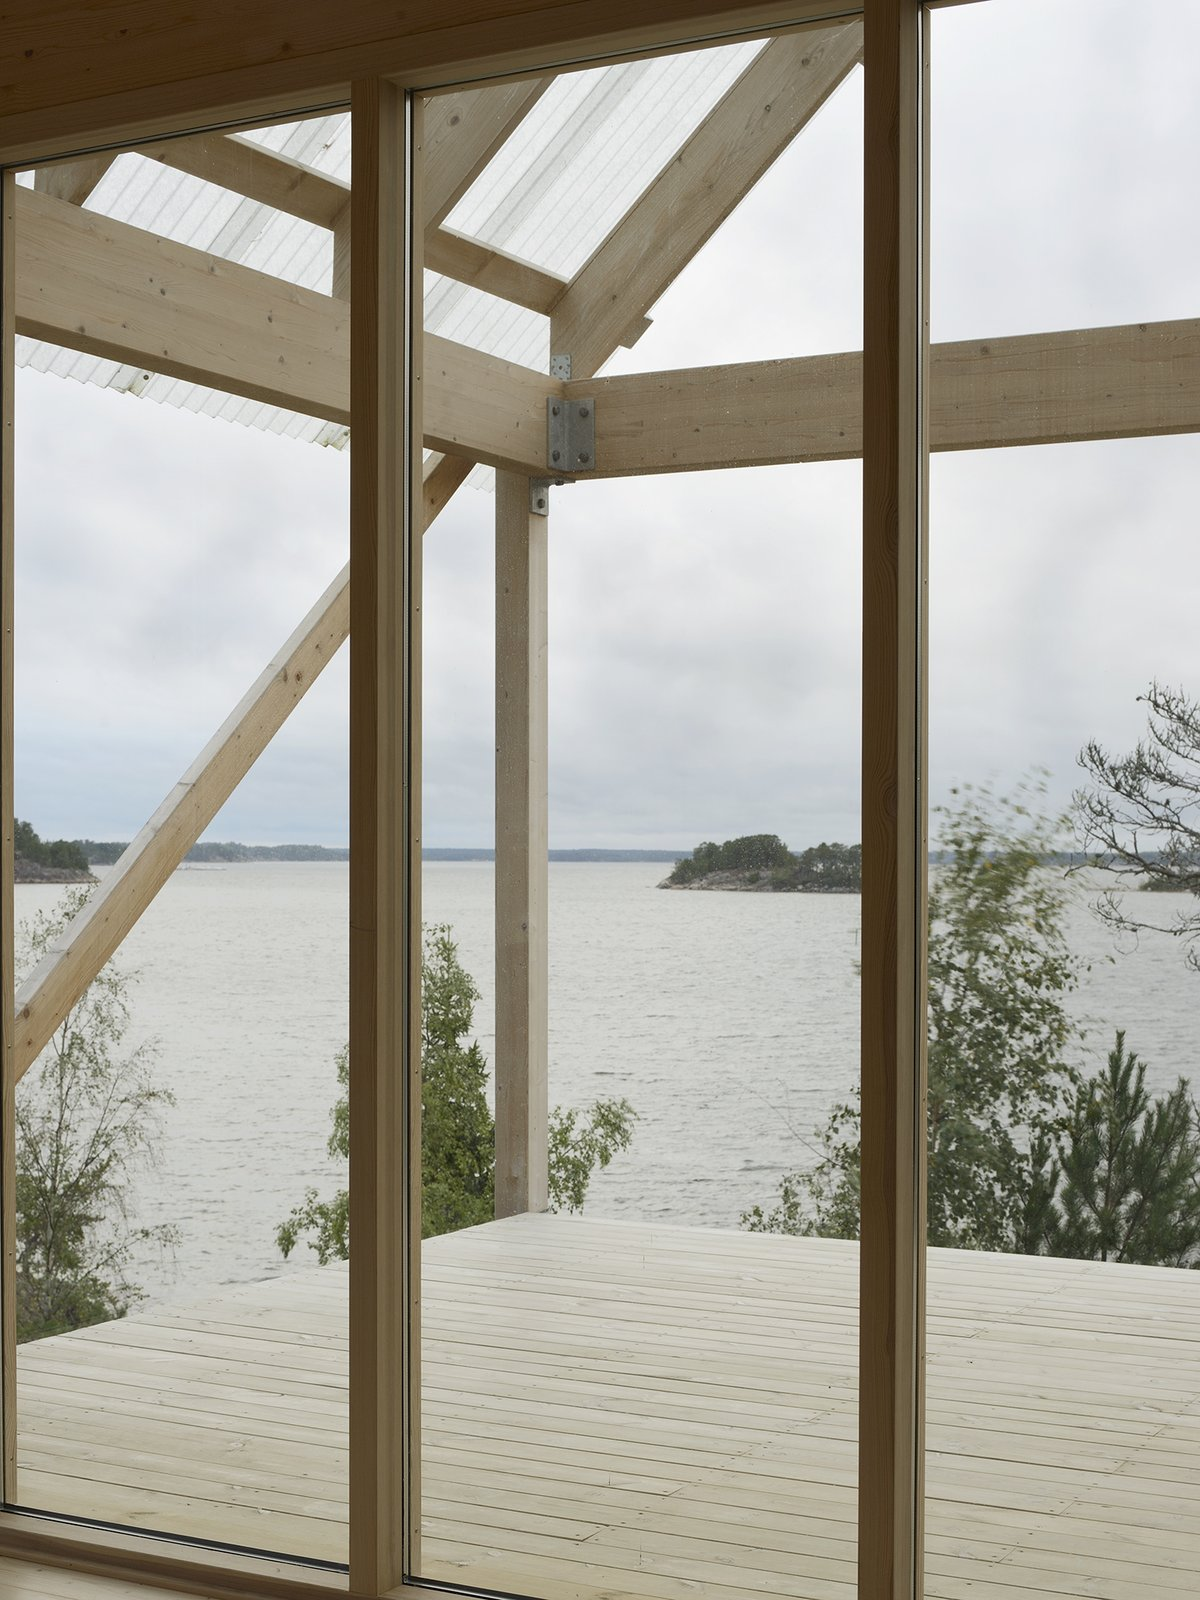 The roof portion made of corrugated fiber-reinforced plastic hangs above deck, which measures roughly 215 square feet and overlooks views of the water. A Swedish Summer Cabin That Sits  Above and Among the Trees - Photo 3 of 7